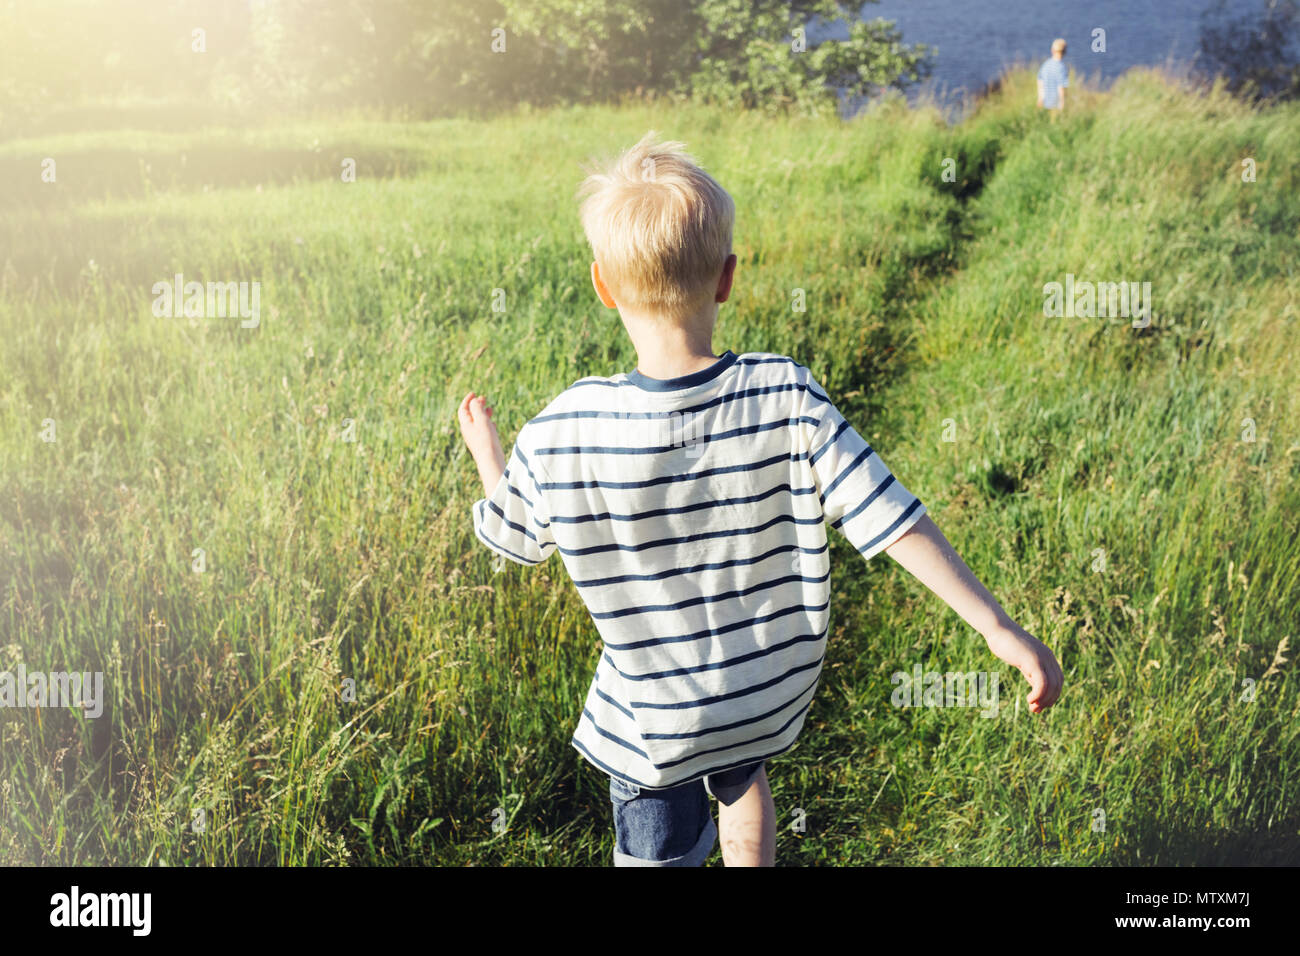 Blond boy running into the distance. A child in nature. Conceptual realism. - Stock Image